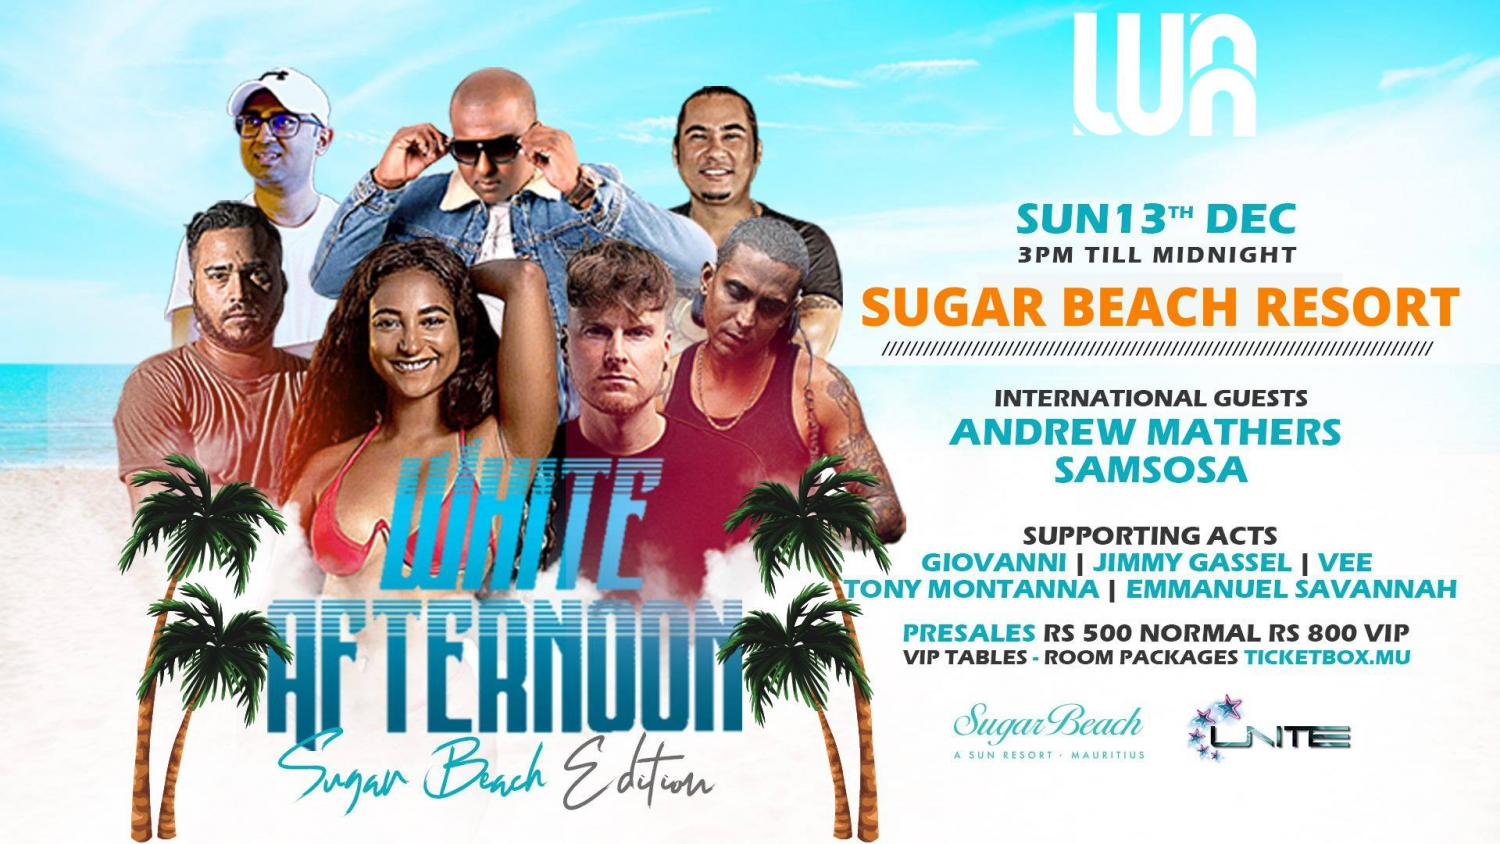 White Afternoon - Sugar Beach Edition ft Andrew Mathers & Sam Sosa